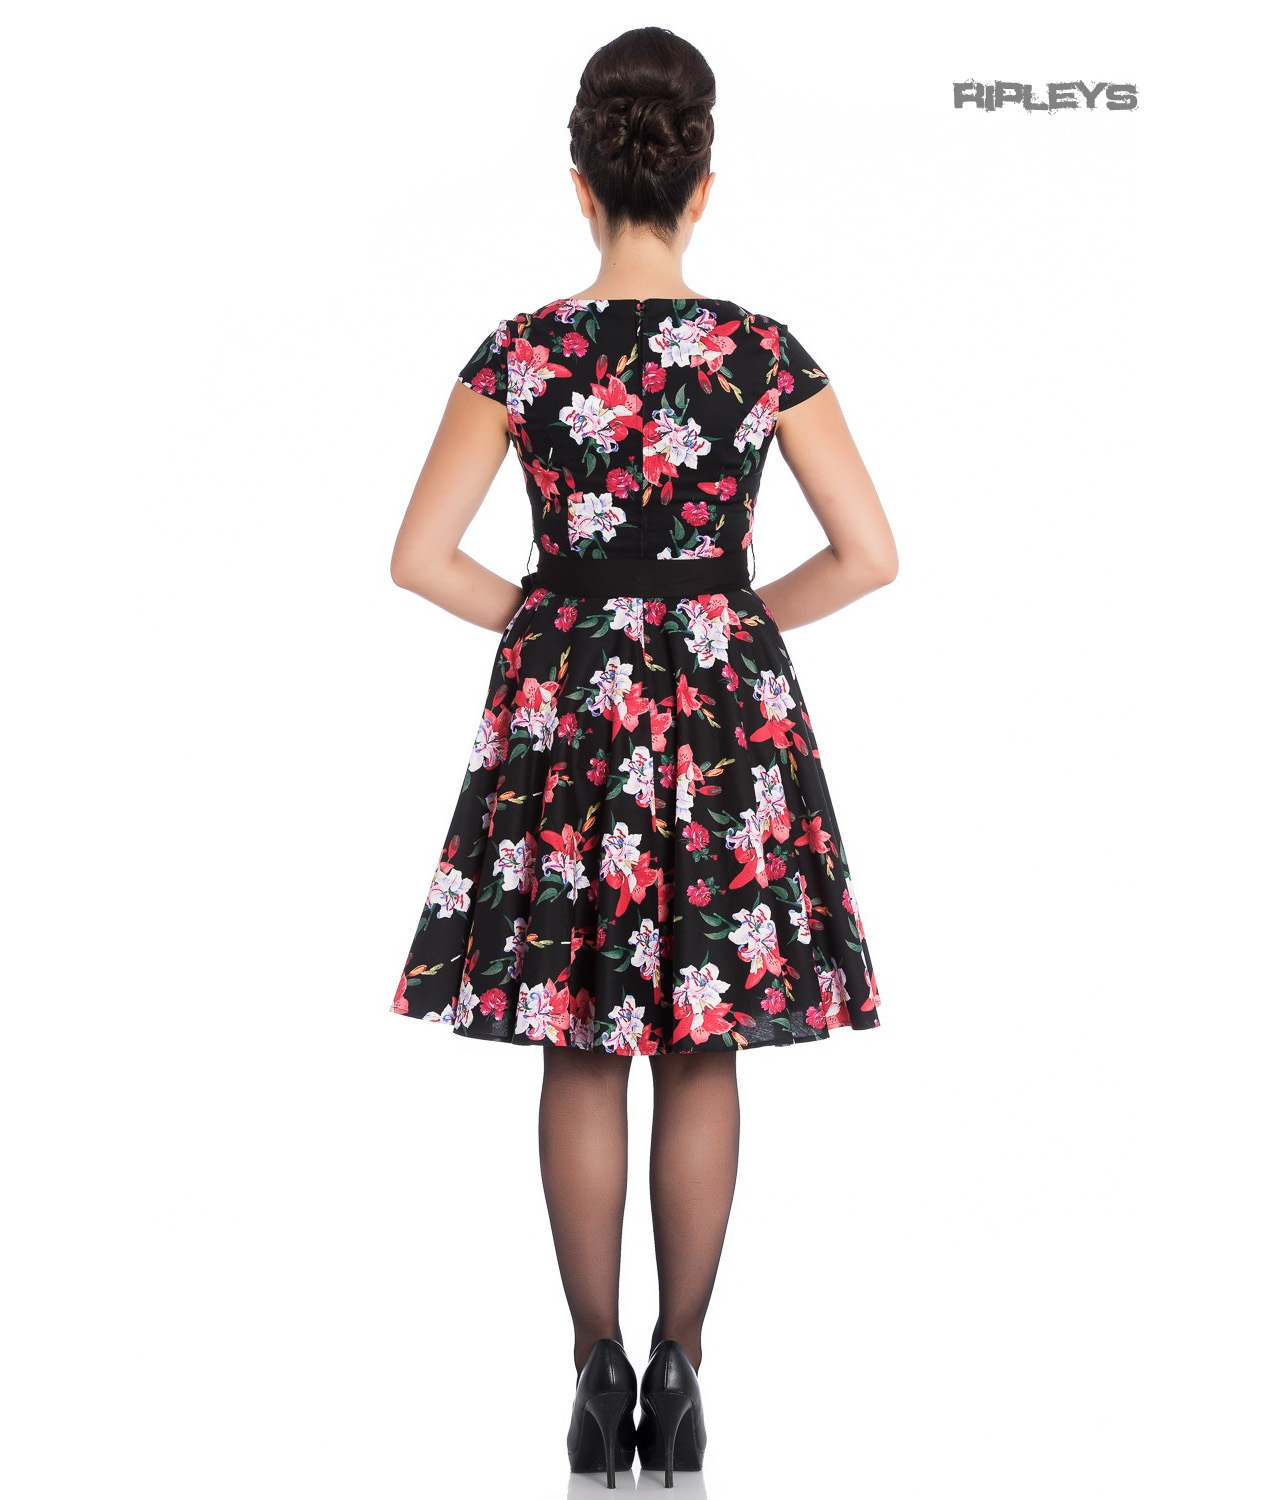 Hell-Bunny-Pin-Up-Mid-Length-50s-Dress-LILIANA-Lilly-Black-Flowers-Bow-All-Sizes thumbnail 8